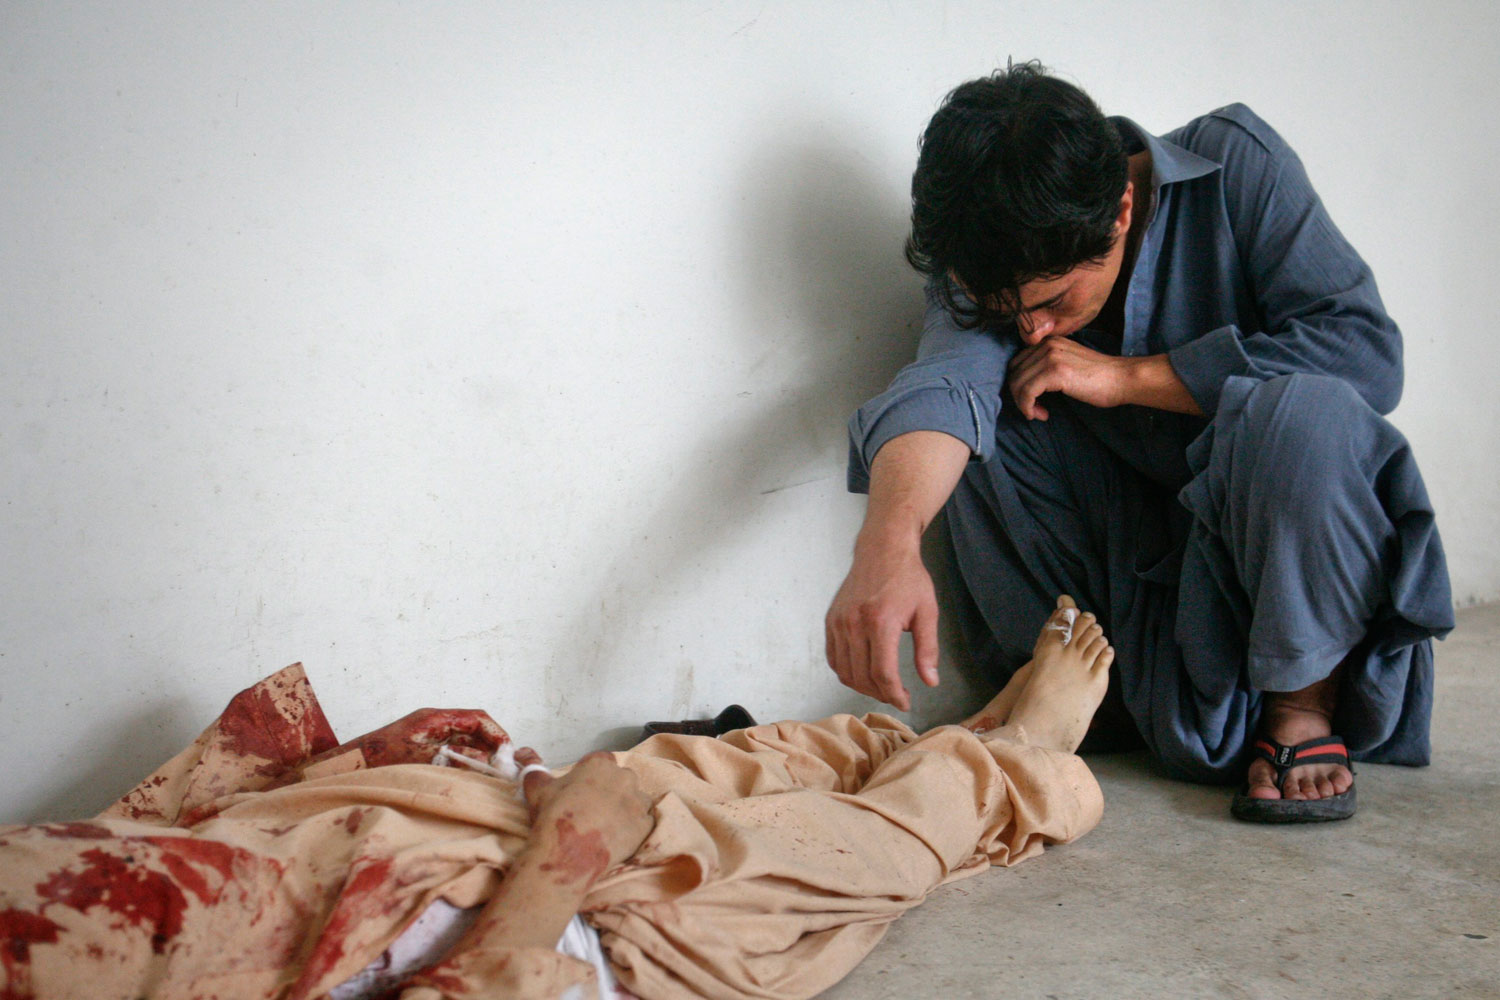 August 31, 2011. A man sits grieving next to the body of his eleven-year-old brother after his body was recovered from the site of a car bomb blast in Quetta A suspected suicide car bomb attack killed 10 people in Pakistan's southwestern Baluchistan as the country celebrated the Muslim festival of Eid al-Fitr.